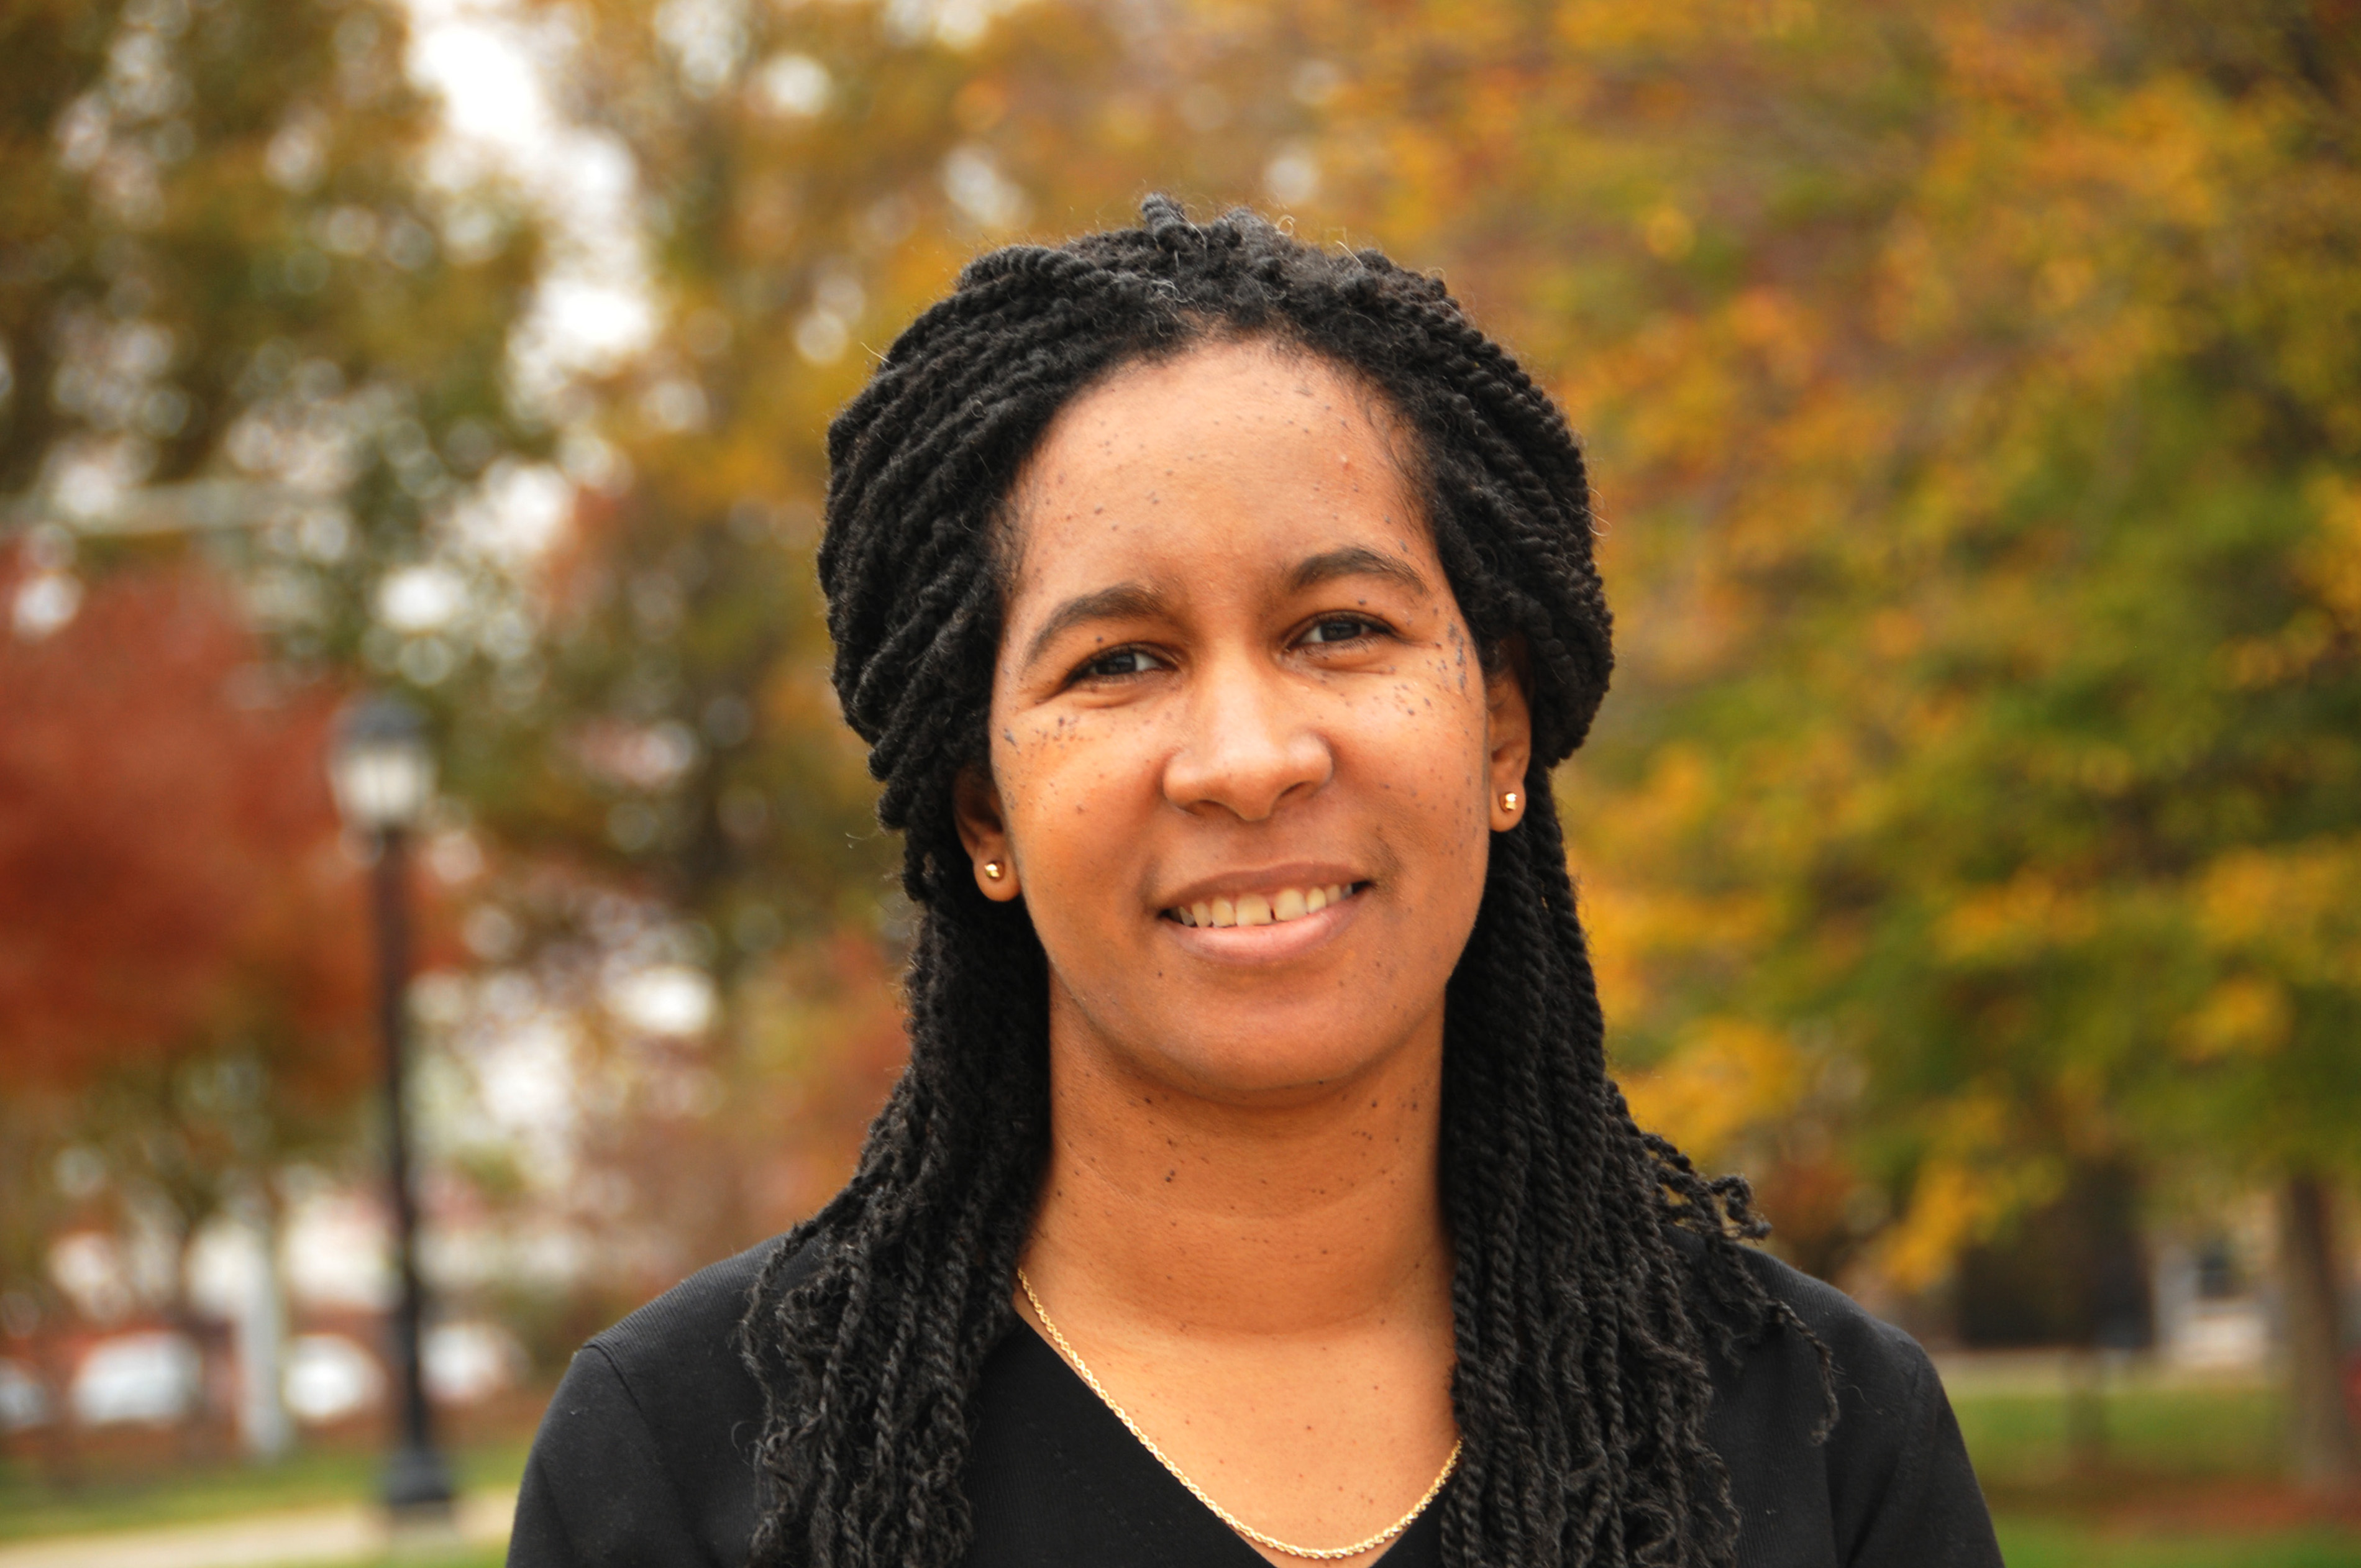 Dr. Patterson pens Op-Ed in Philadelphia Inquirer